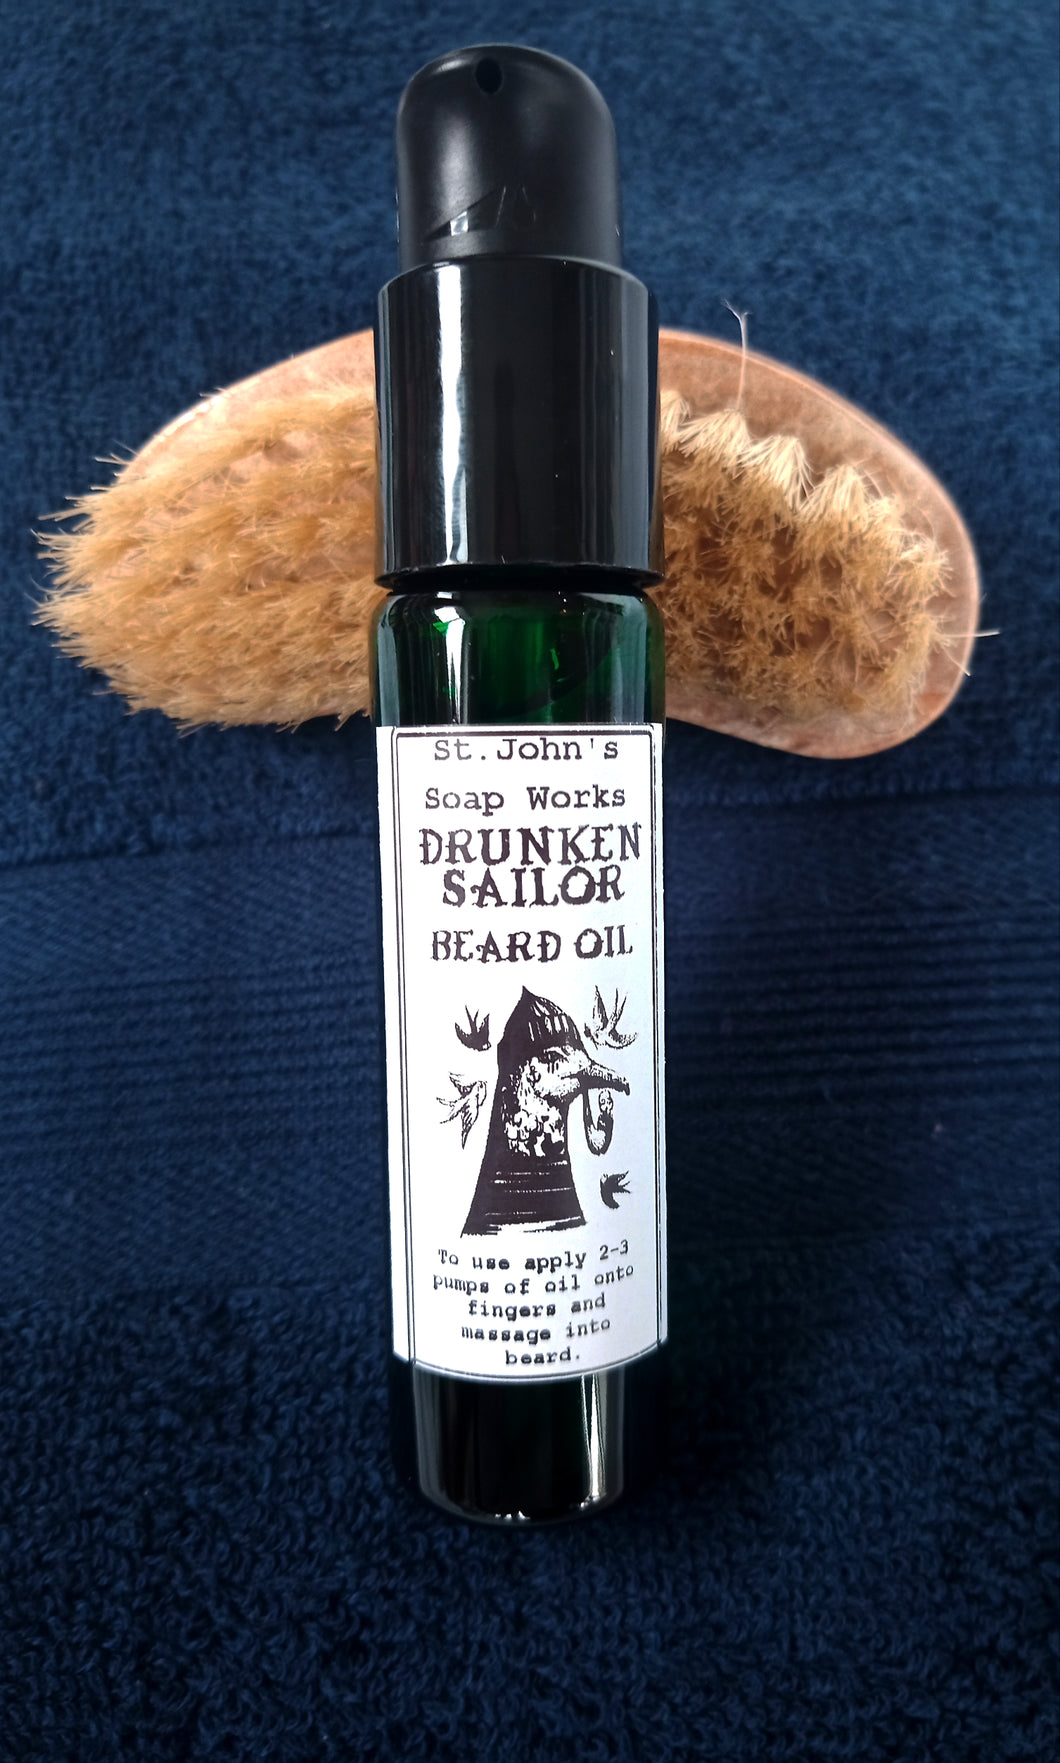 Drunken Sailor Beard Oil